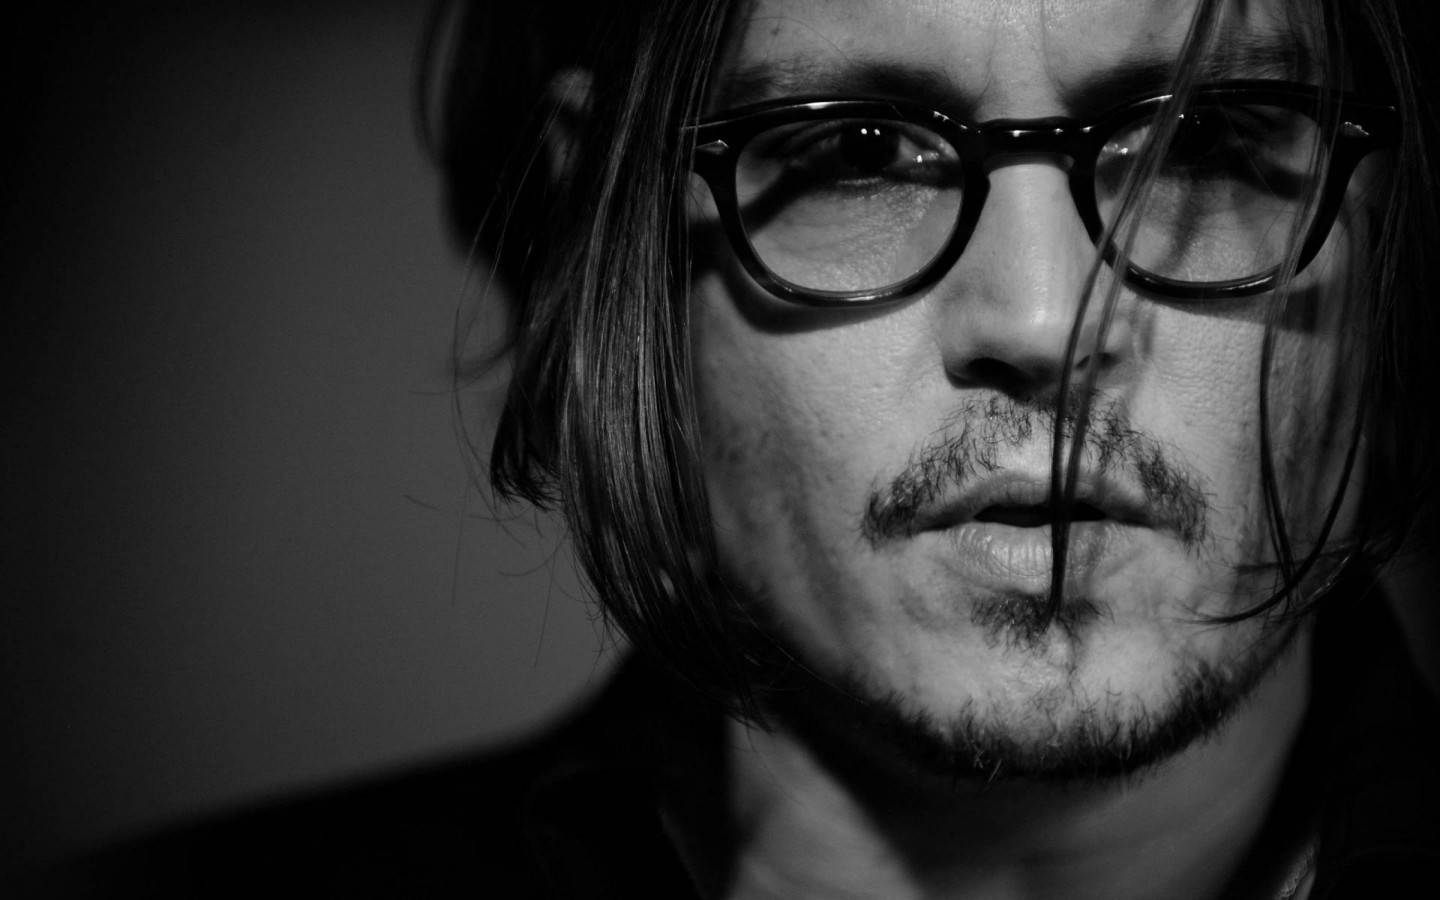 Johnny Depp Black & White Portrait Wallpaper for Desktop 1440x900